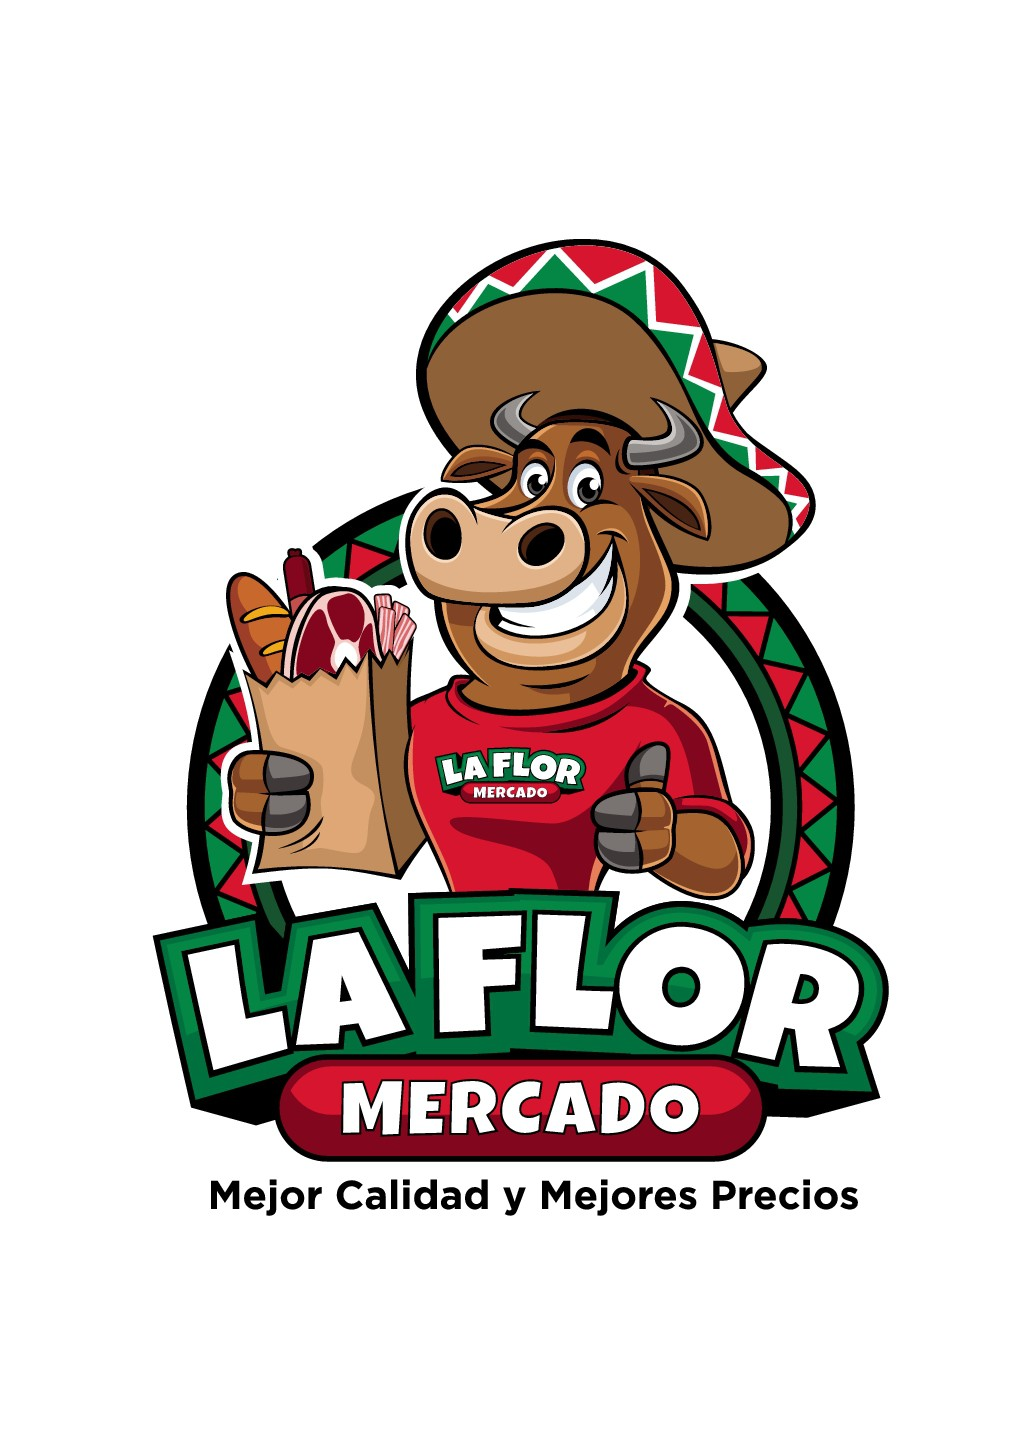 Mexican Meat Market, Carniceria, grocery store